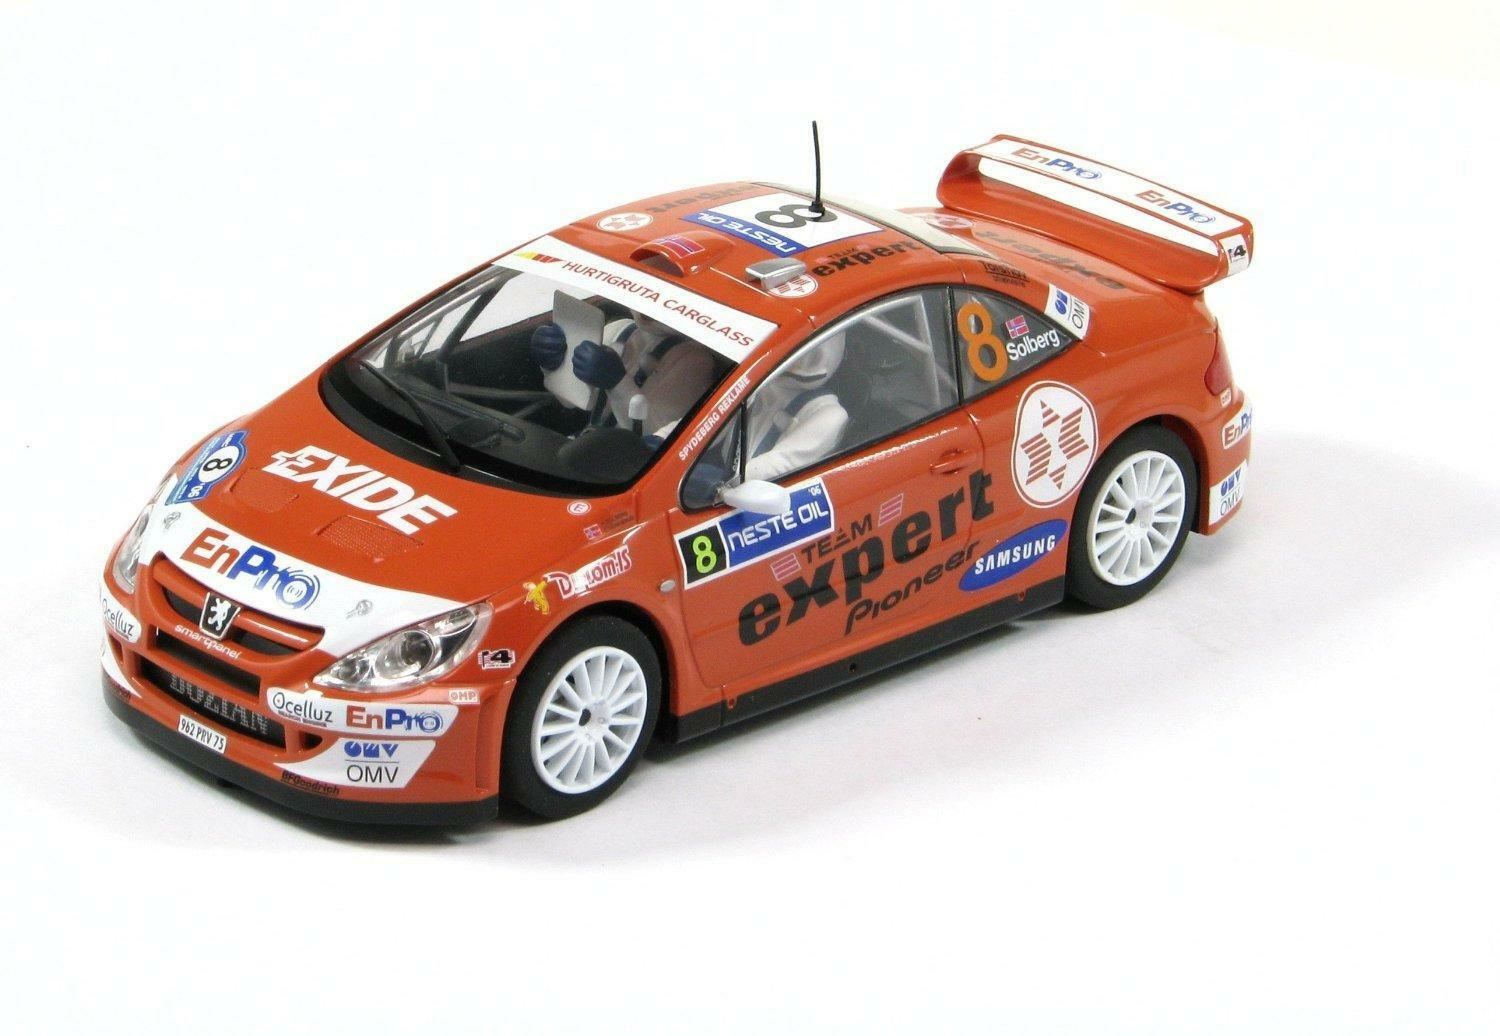 SCALEXTRIC C2885 Peugeot 307 Henning Solberg Racing Car Aidio Model Collectable